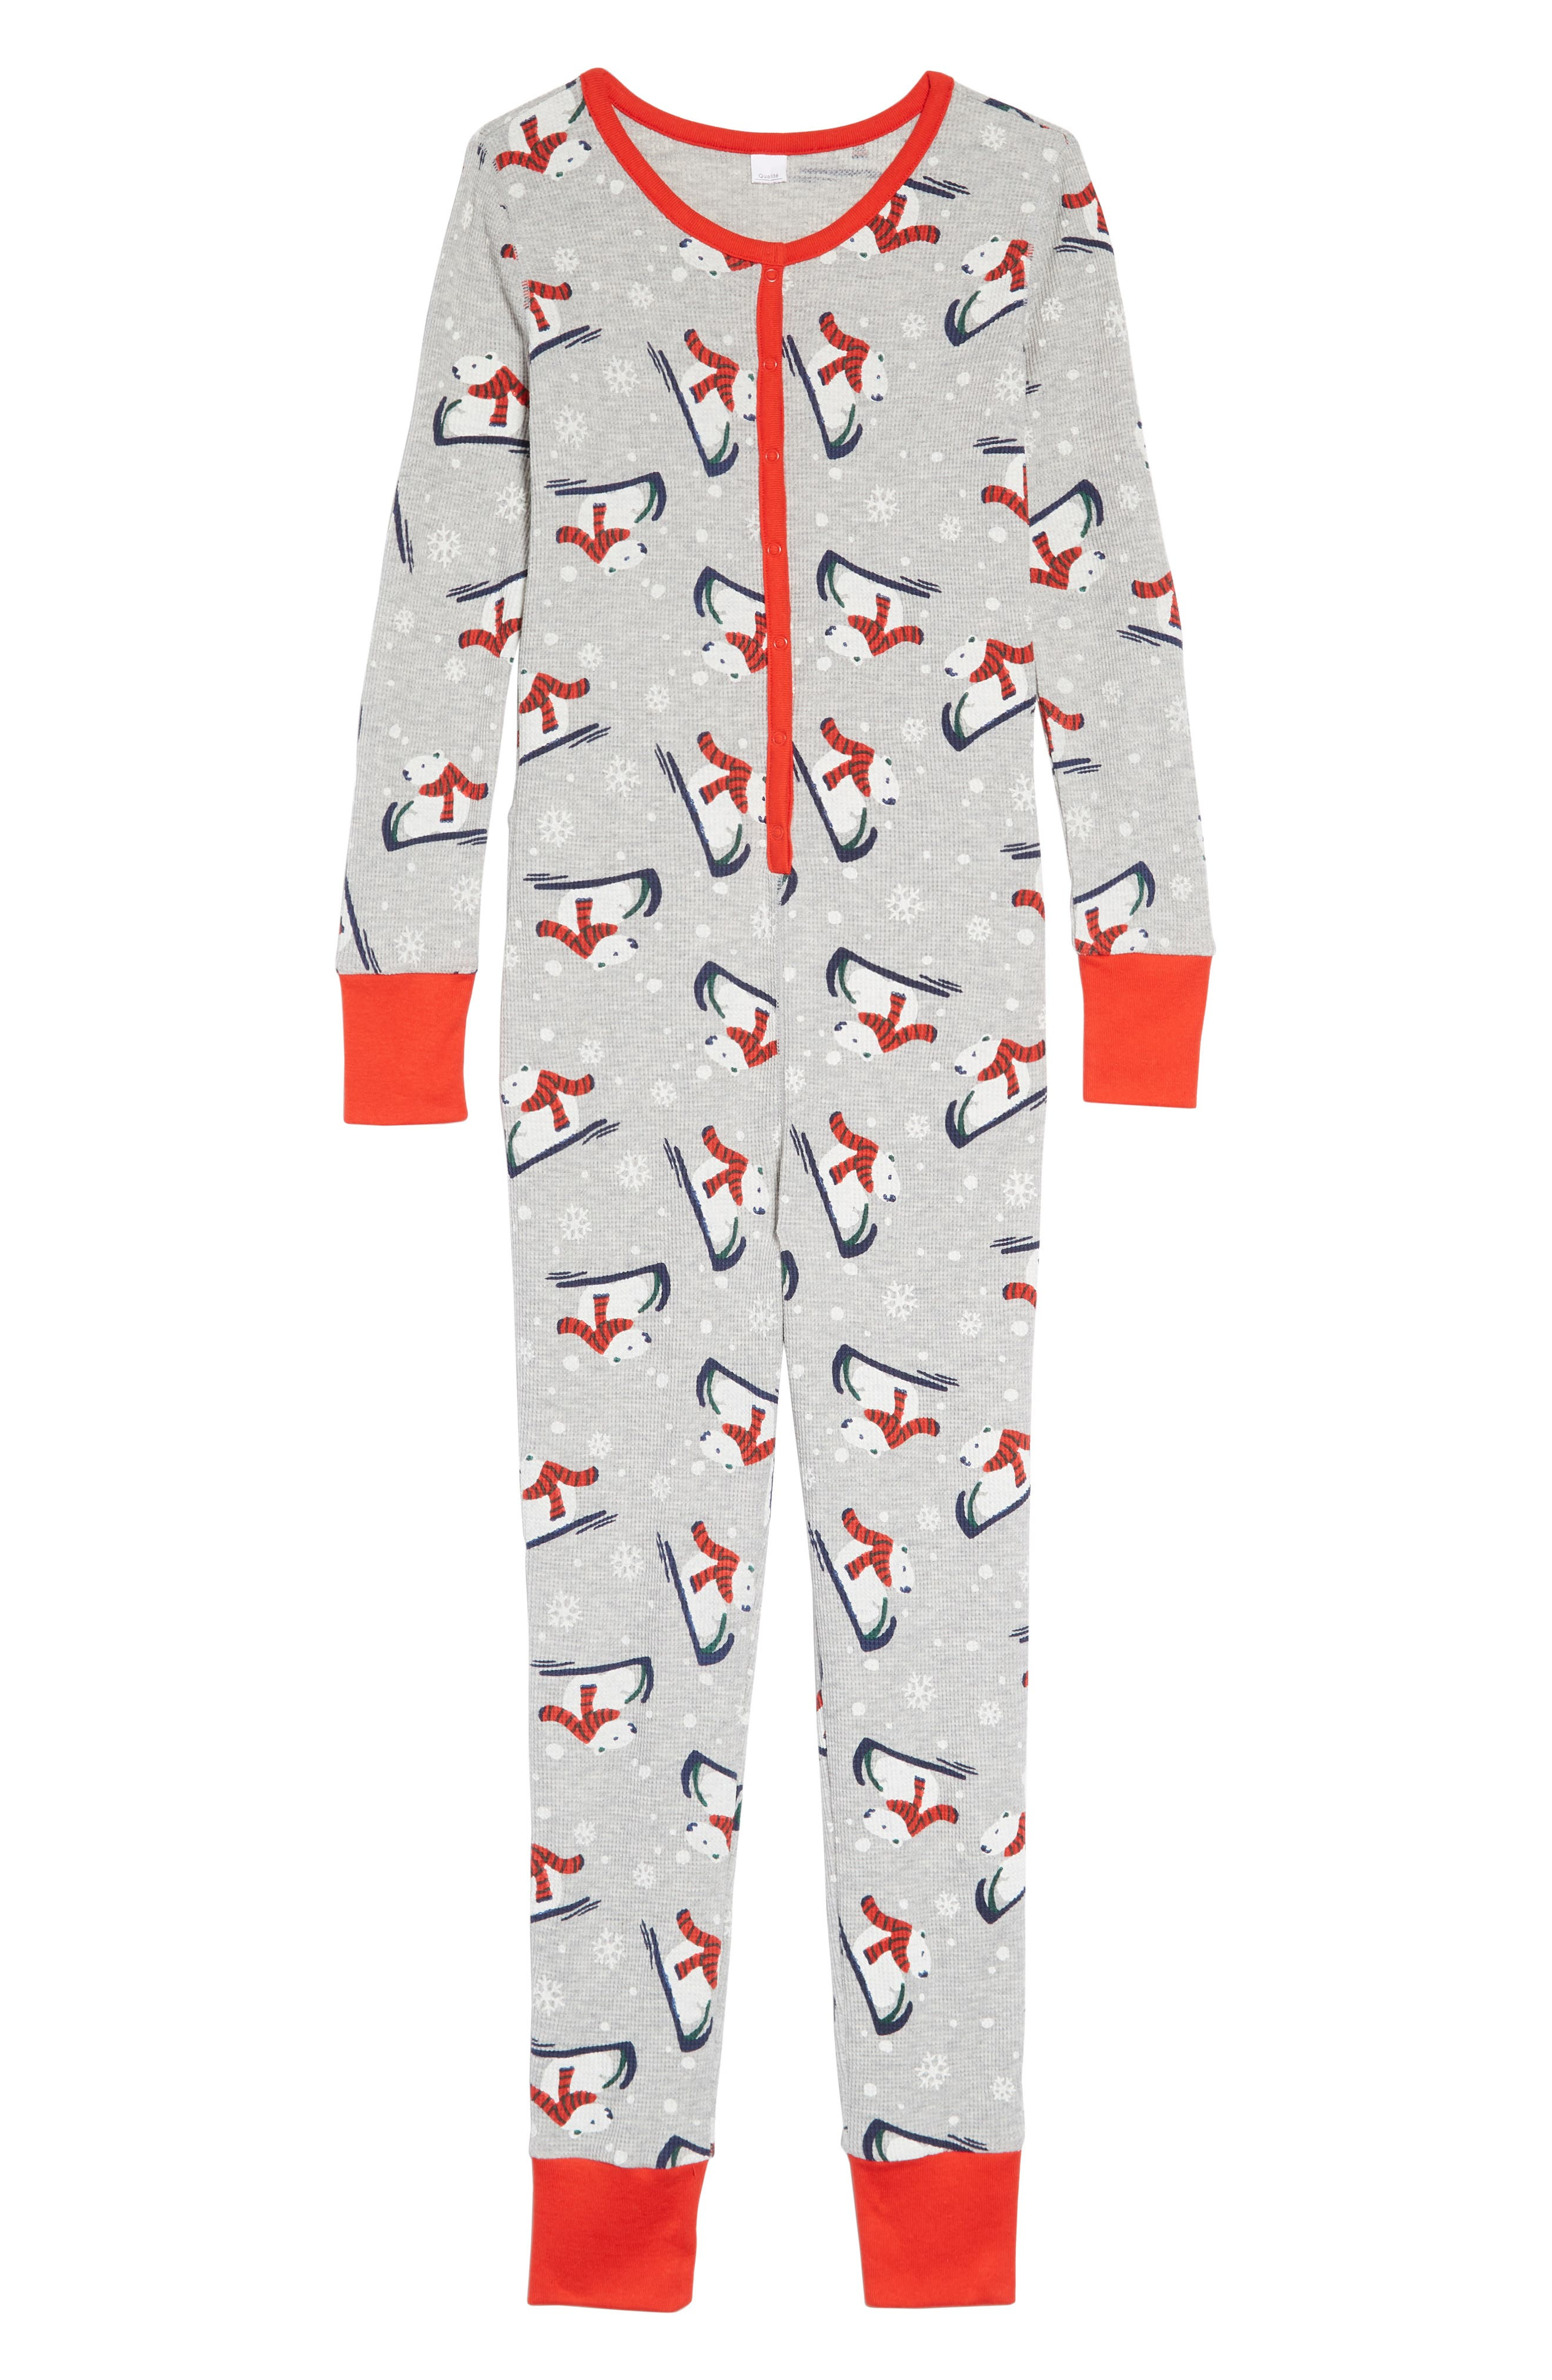 Thermal Fitted One-Piece Pajamas,                             Main thumbnail 1, color,                             GREY PEARL HEATHER POLAR BEAR